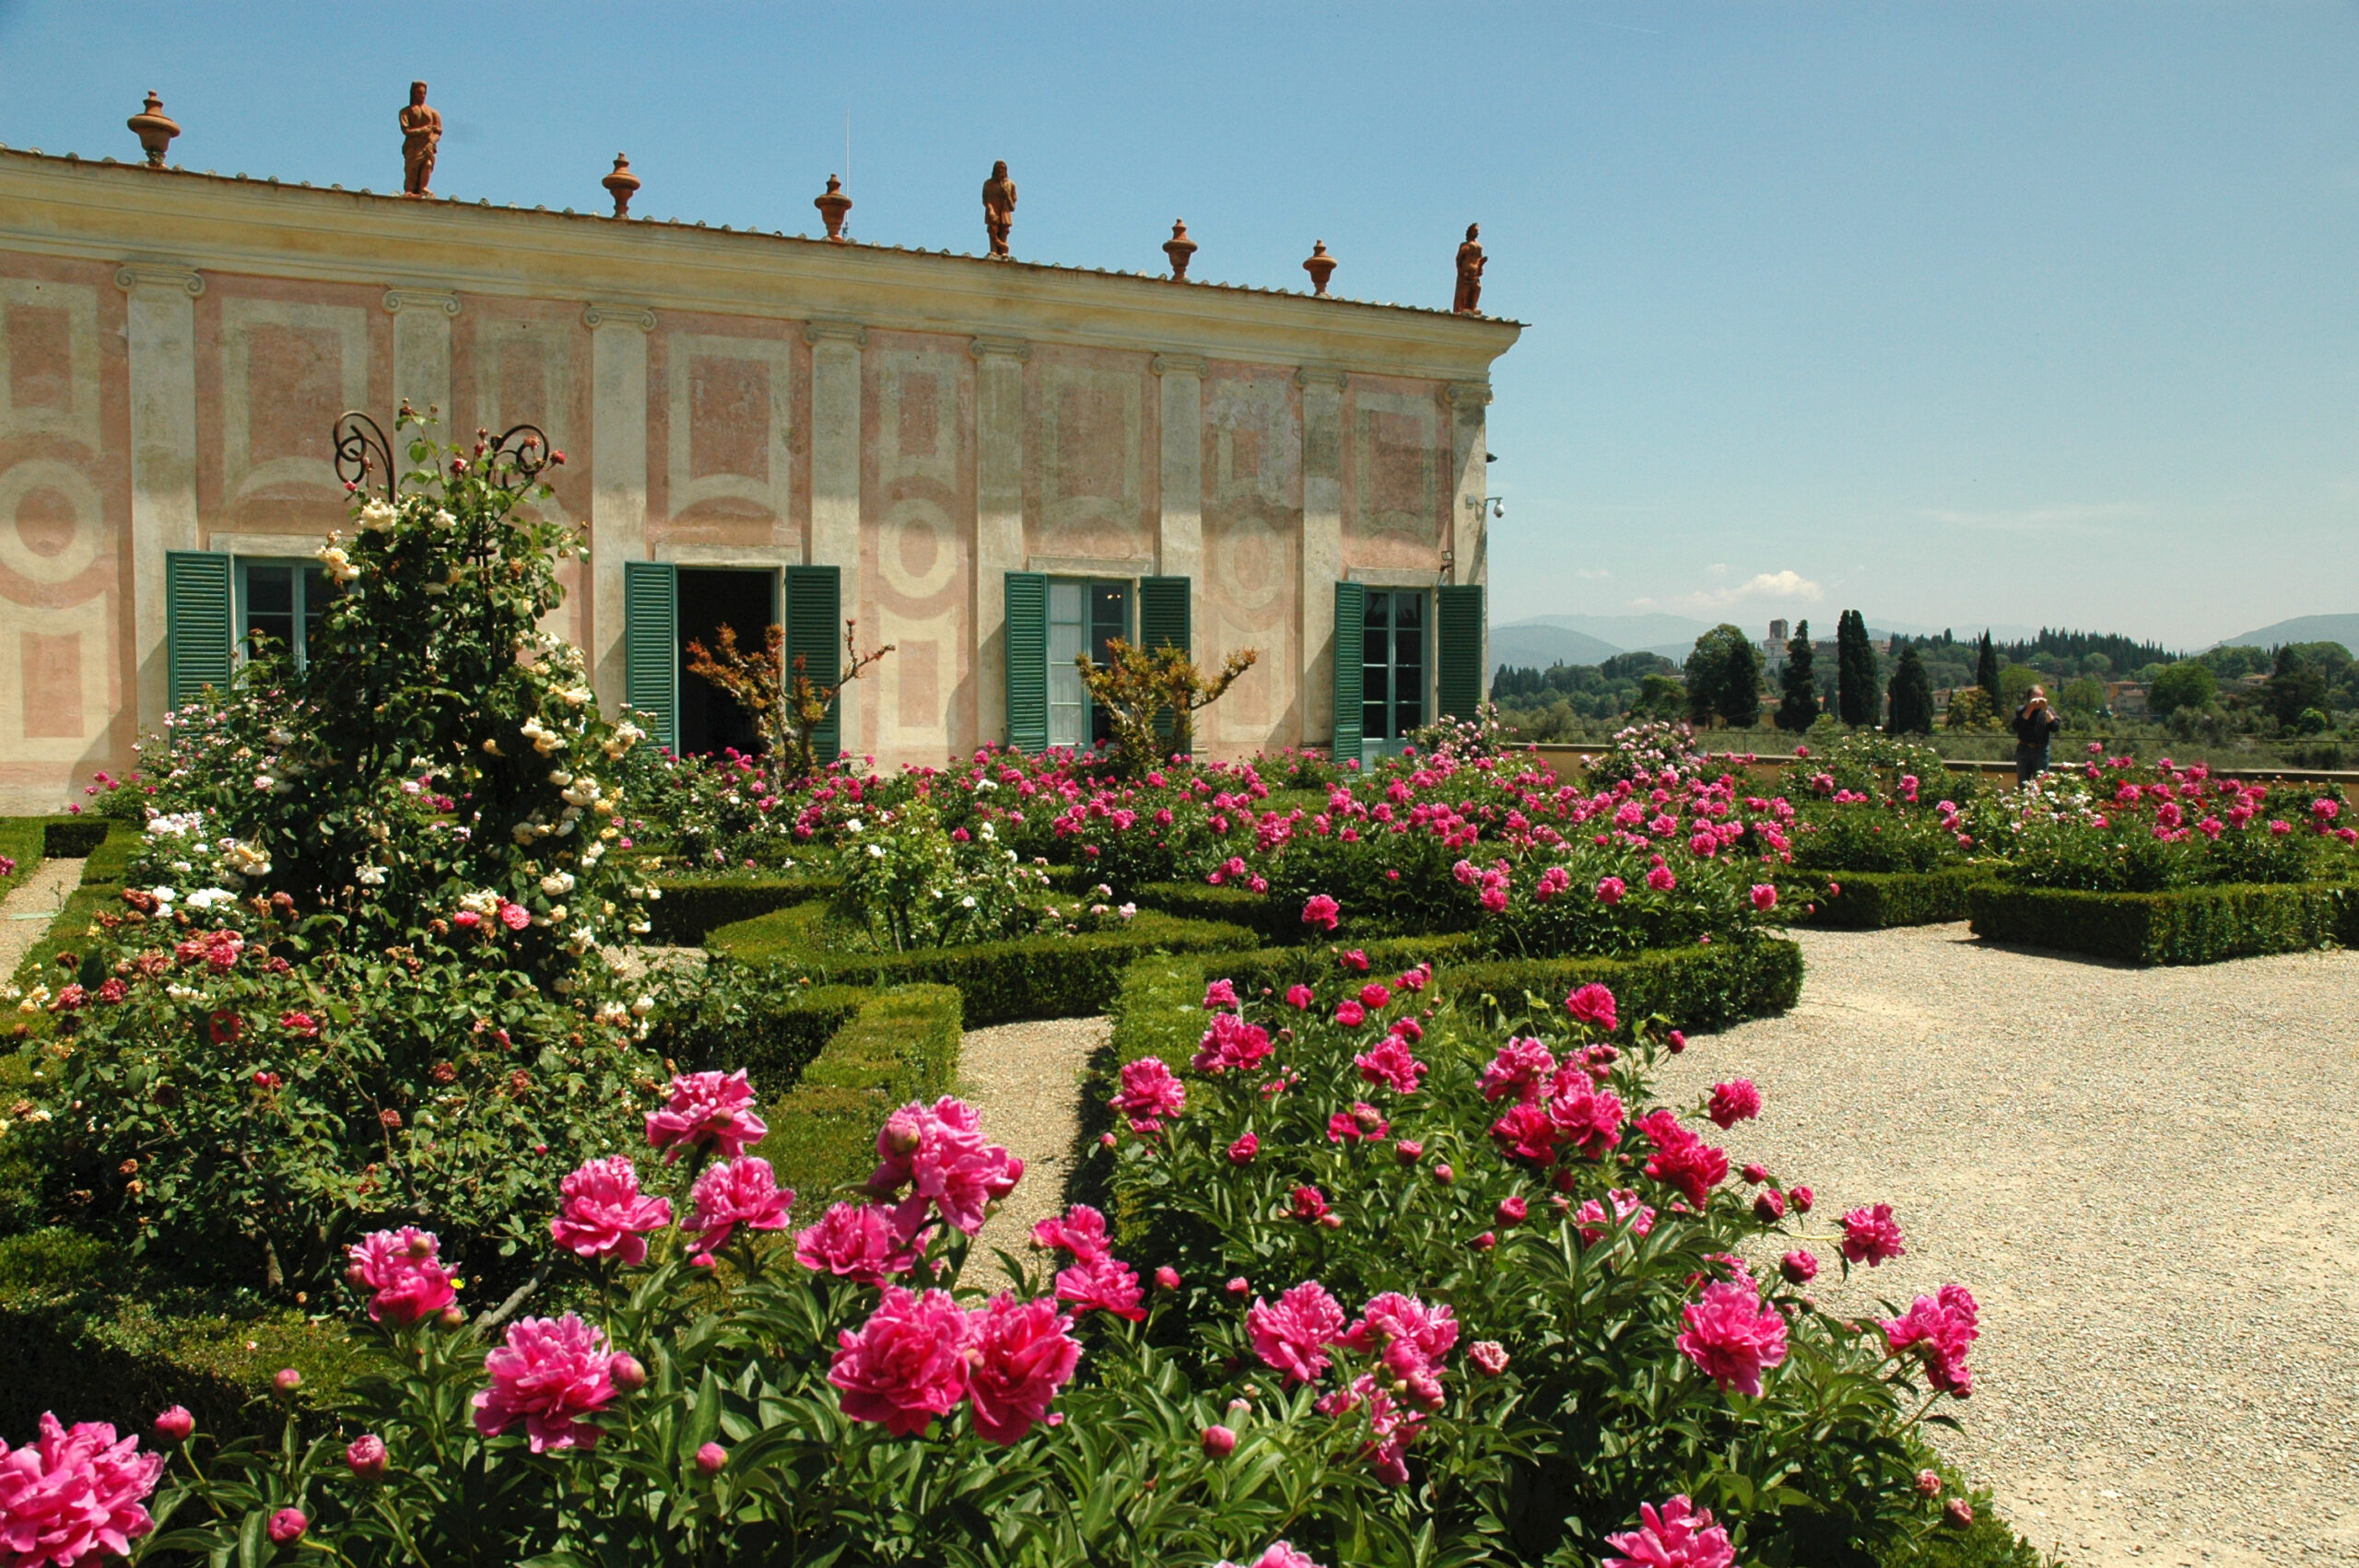 The Boboli Gardens in Florence are an example of a more formal Italian design style.